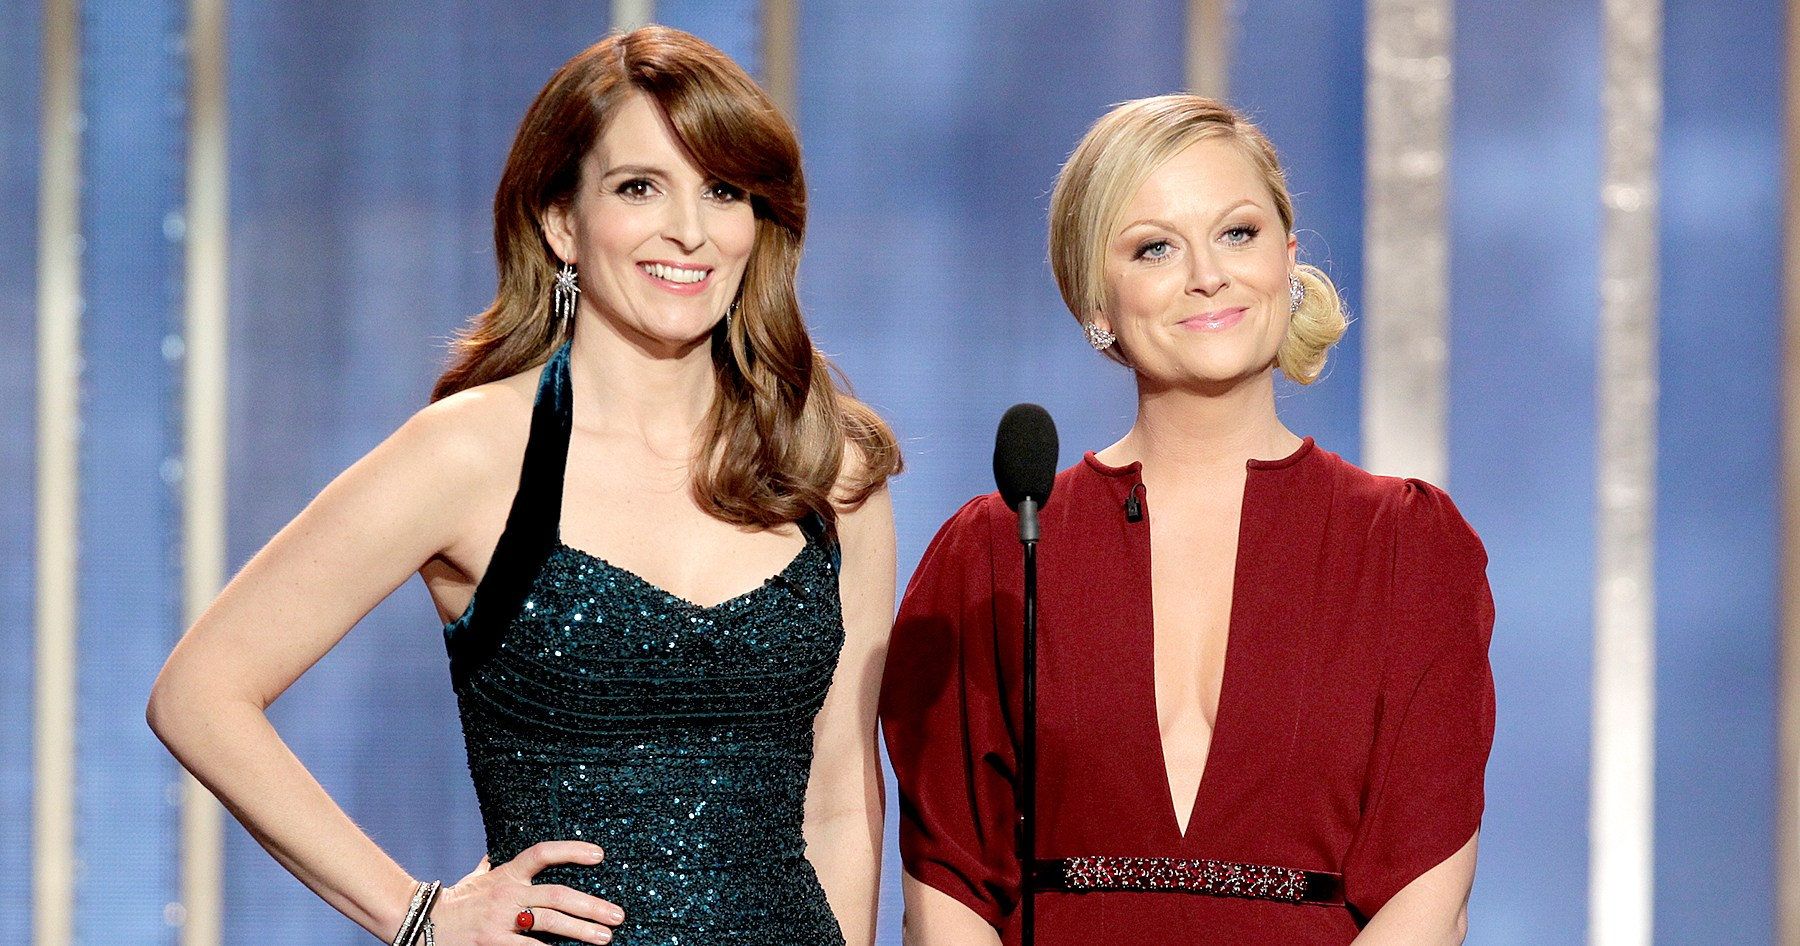 Andy and Sandra! Revisit the Golden Globe Hosts Through the Years